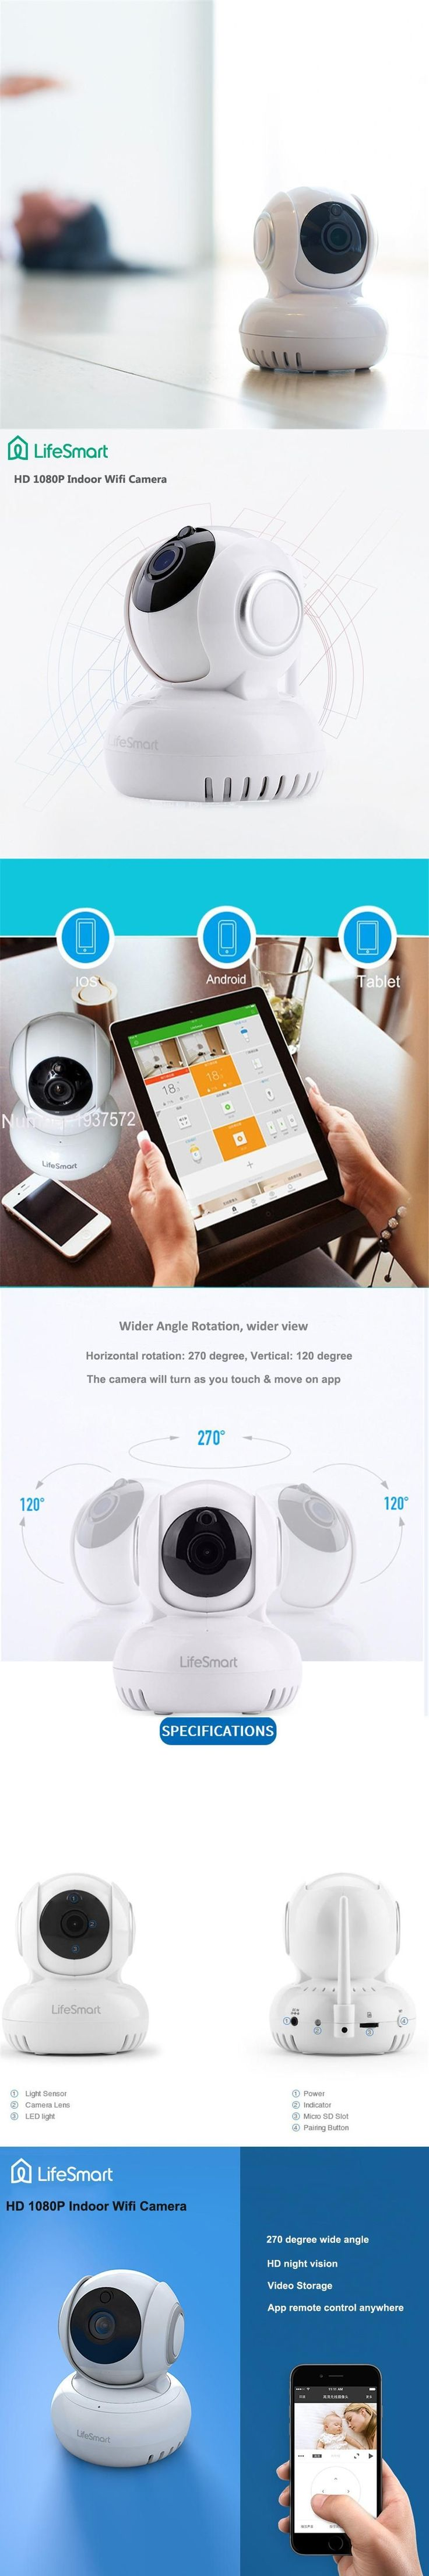 Lifesmart Home Automation Smart IP Camera Wifi Wireless Remote Control CCTV Camera for Security Alarm Night Vision 720P NTSC/PAL